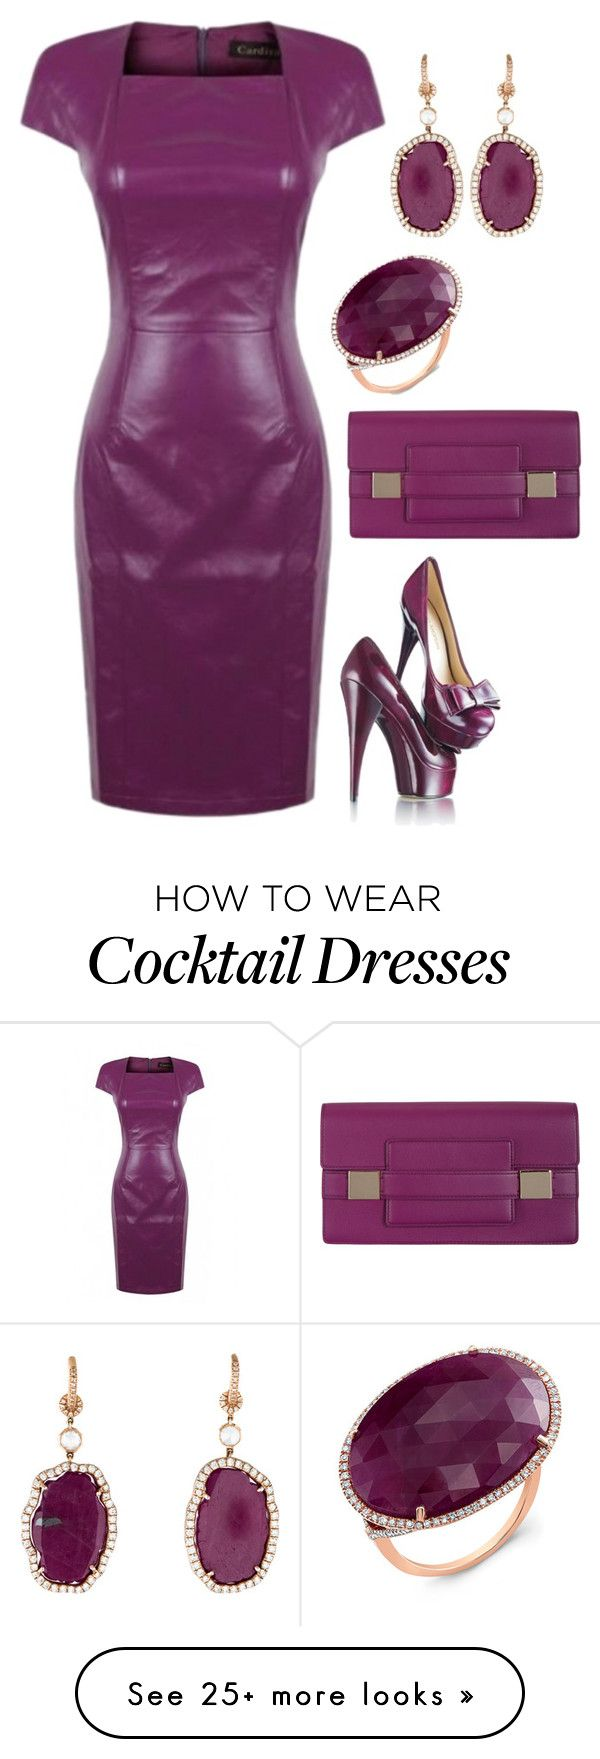 """""""Let The Festivities Continue #54"""" by mscody on Polyvore featuring Enzo Angiolini, Delvaux, NSR Nina Runsdorf, women's clothing, women, female, woman, misses, juniors and party"""